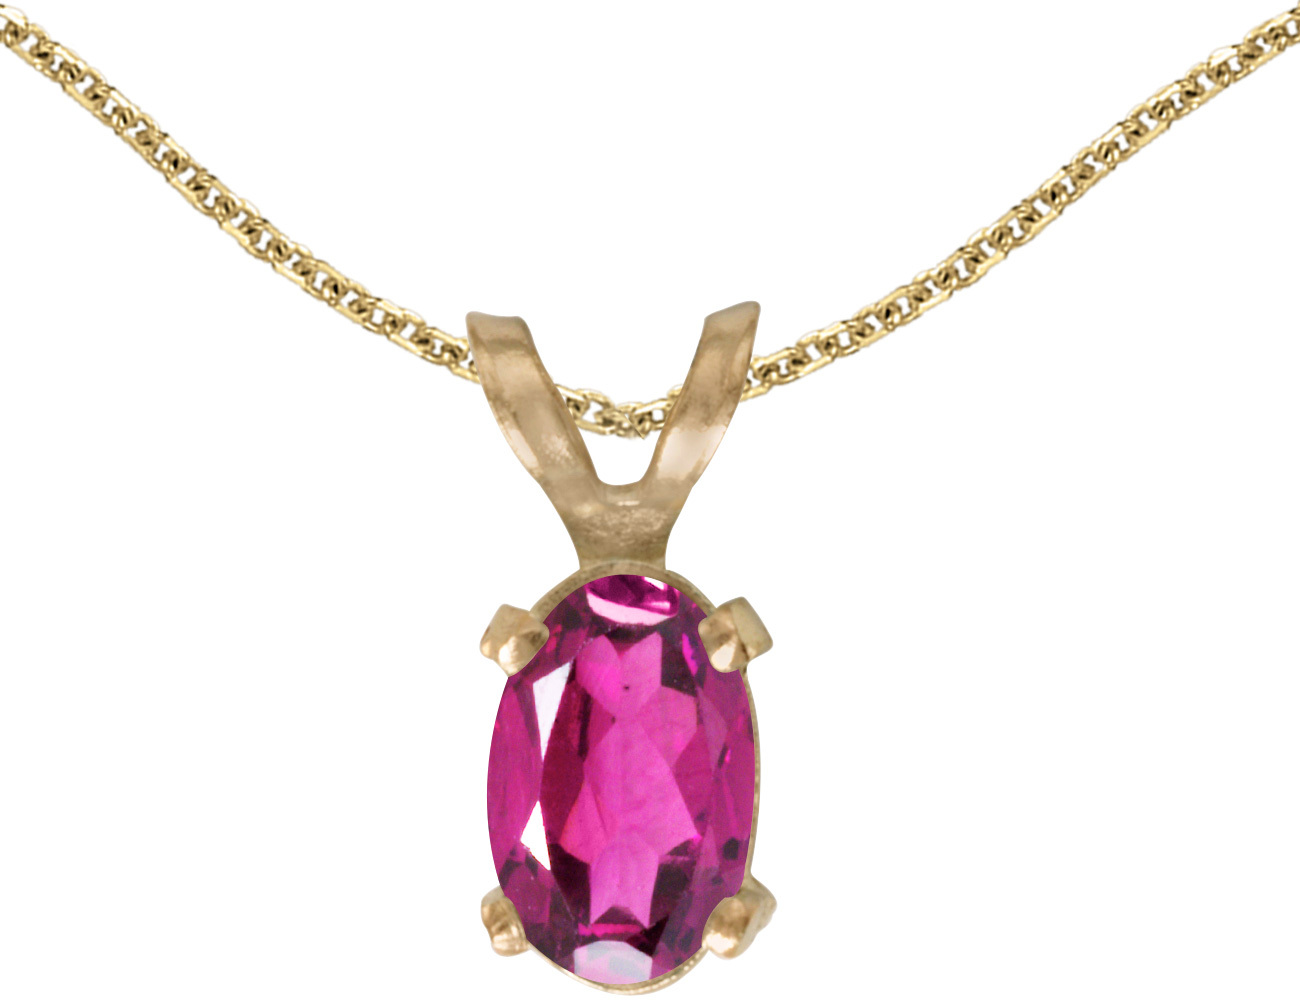 14k Yellow Gold Oval Pink Topaz Pendant (Chain NOT included)